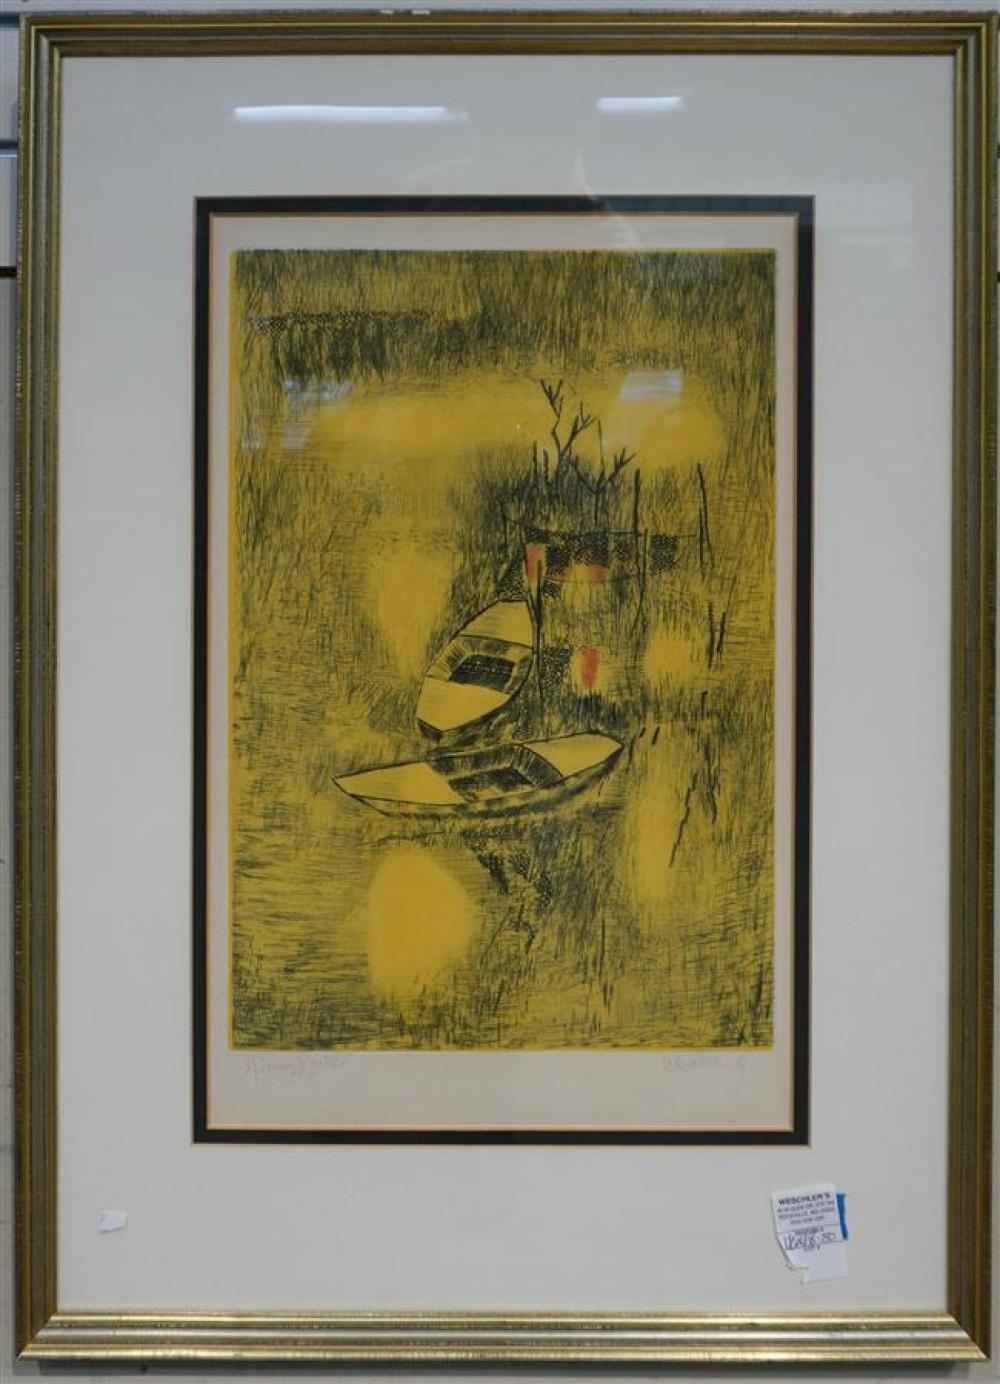 Lebedang, Two Docked Canoes, Color Etching, 9/10; Framed: 28 3/4 x 20 5/8 Inches